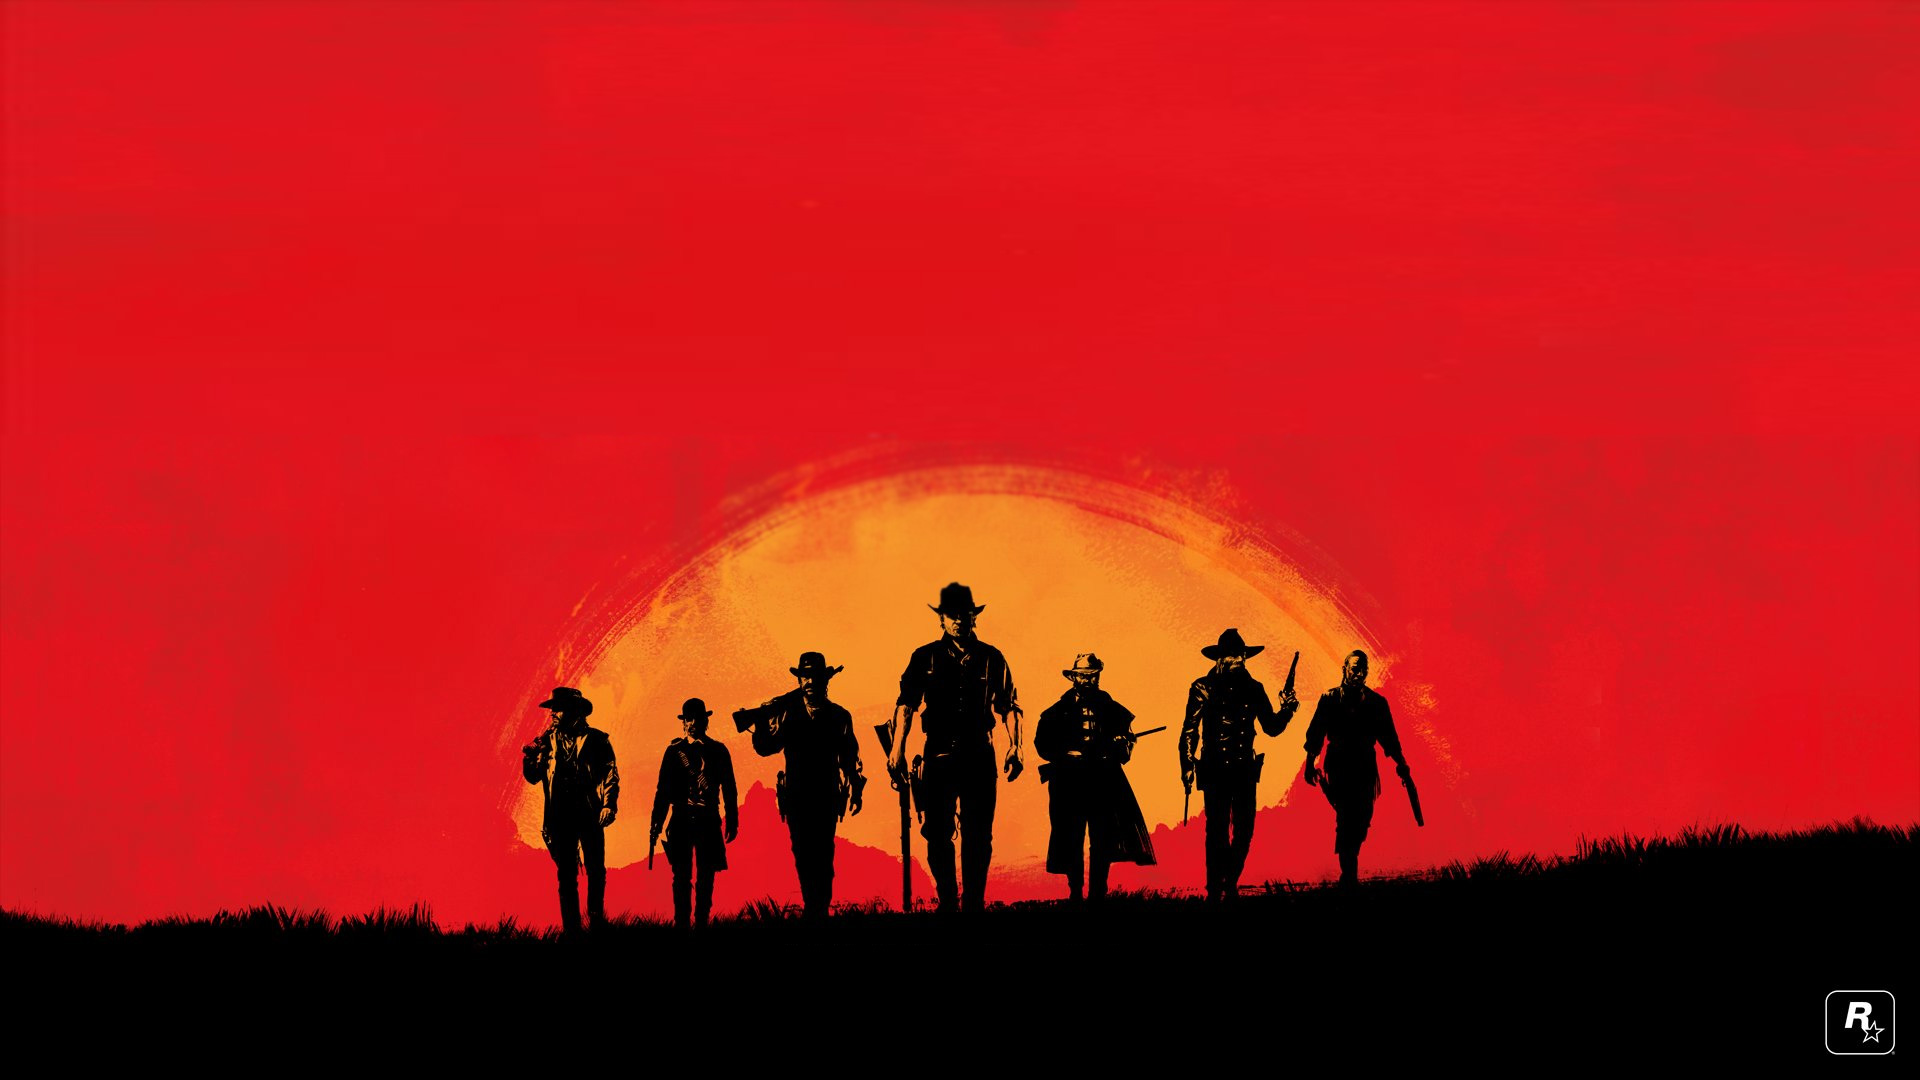 Red Dead Redemption 2 release date possibly revealed by British retailer